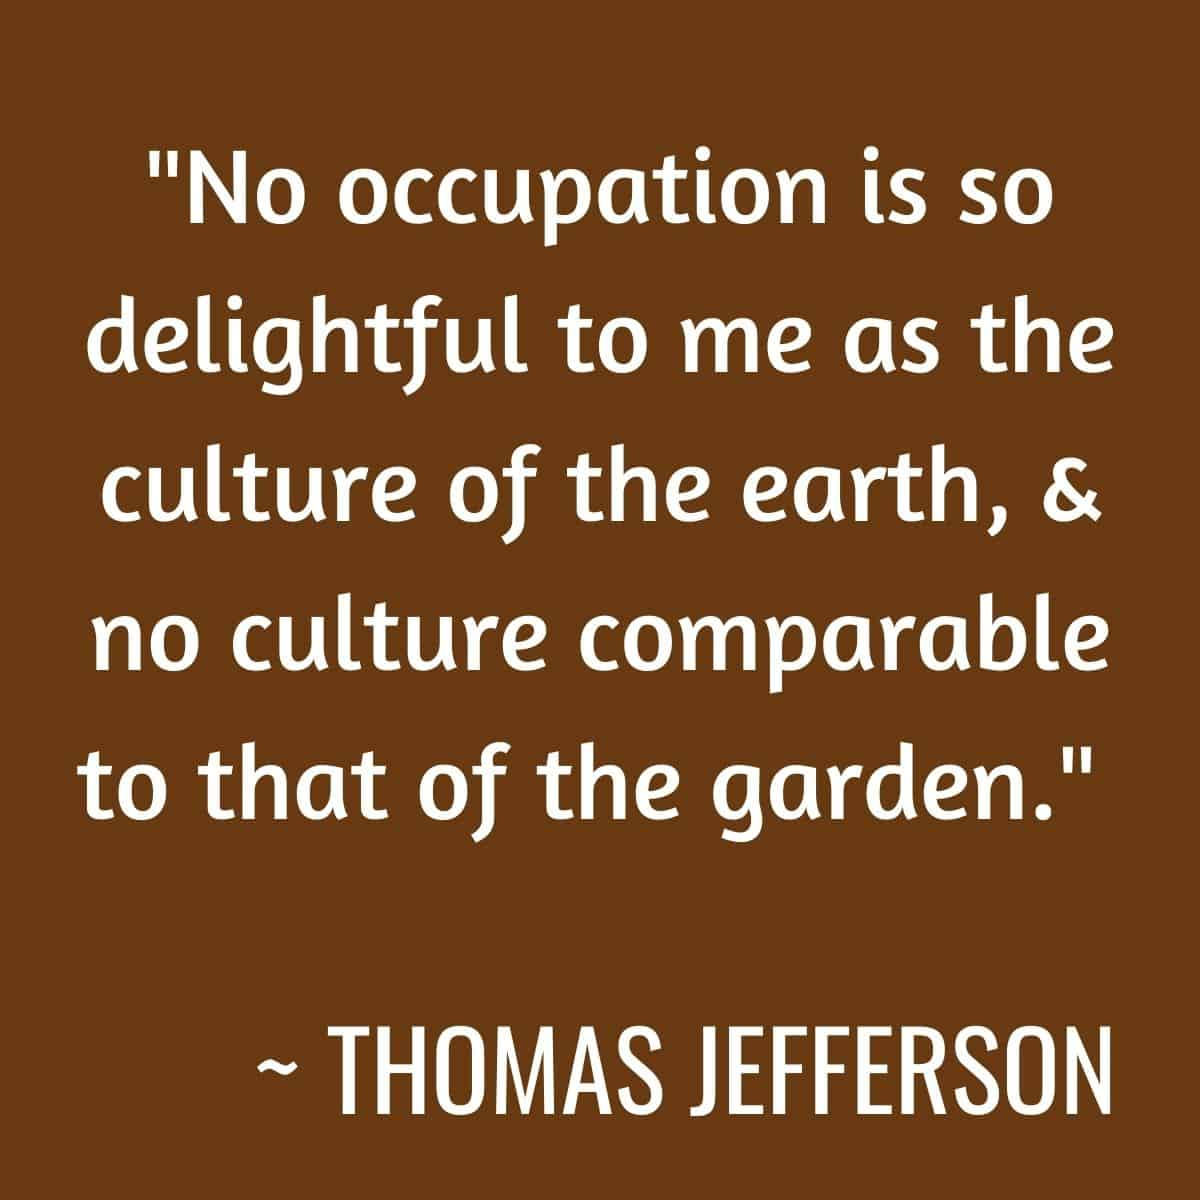 No occupation is so delightful to me as the culture of the earth, no culture comparable to that of the garden.